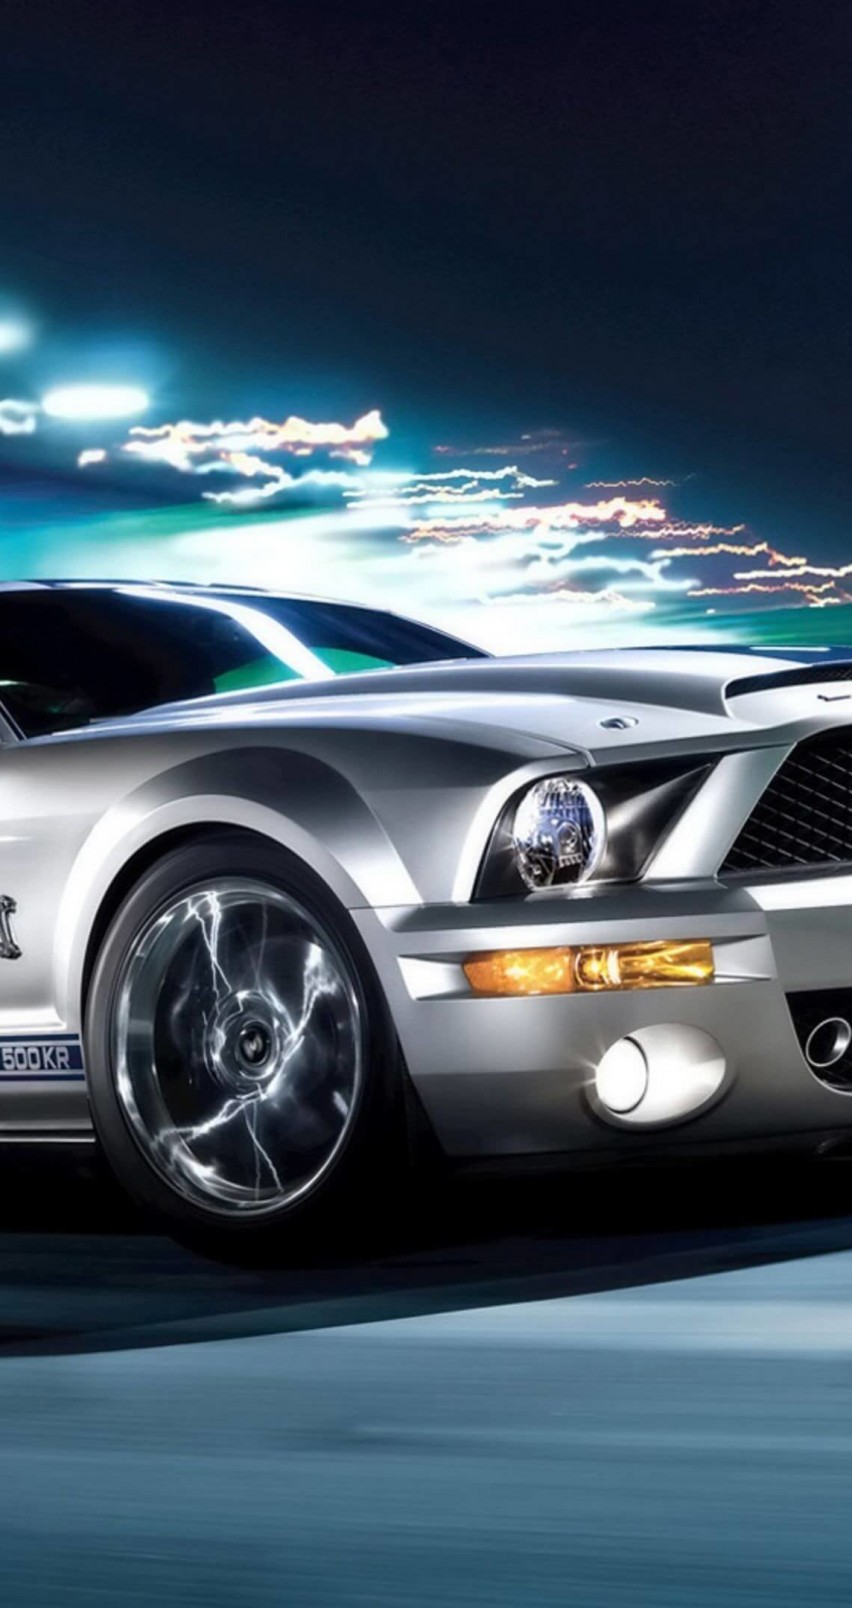 Ford Mustang Shelby GT500KR Wallpaper for Apple iPhone 6 / 6s